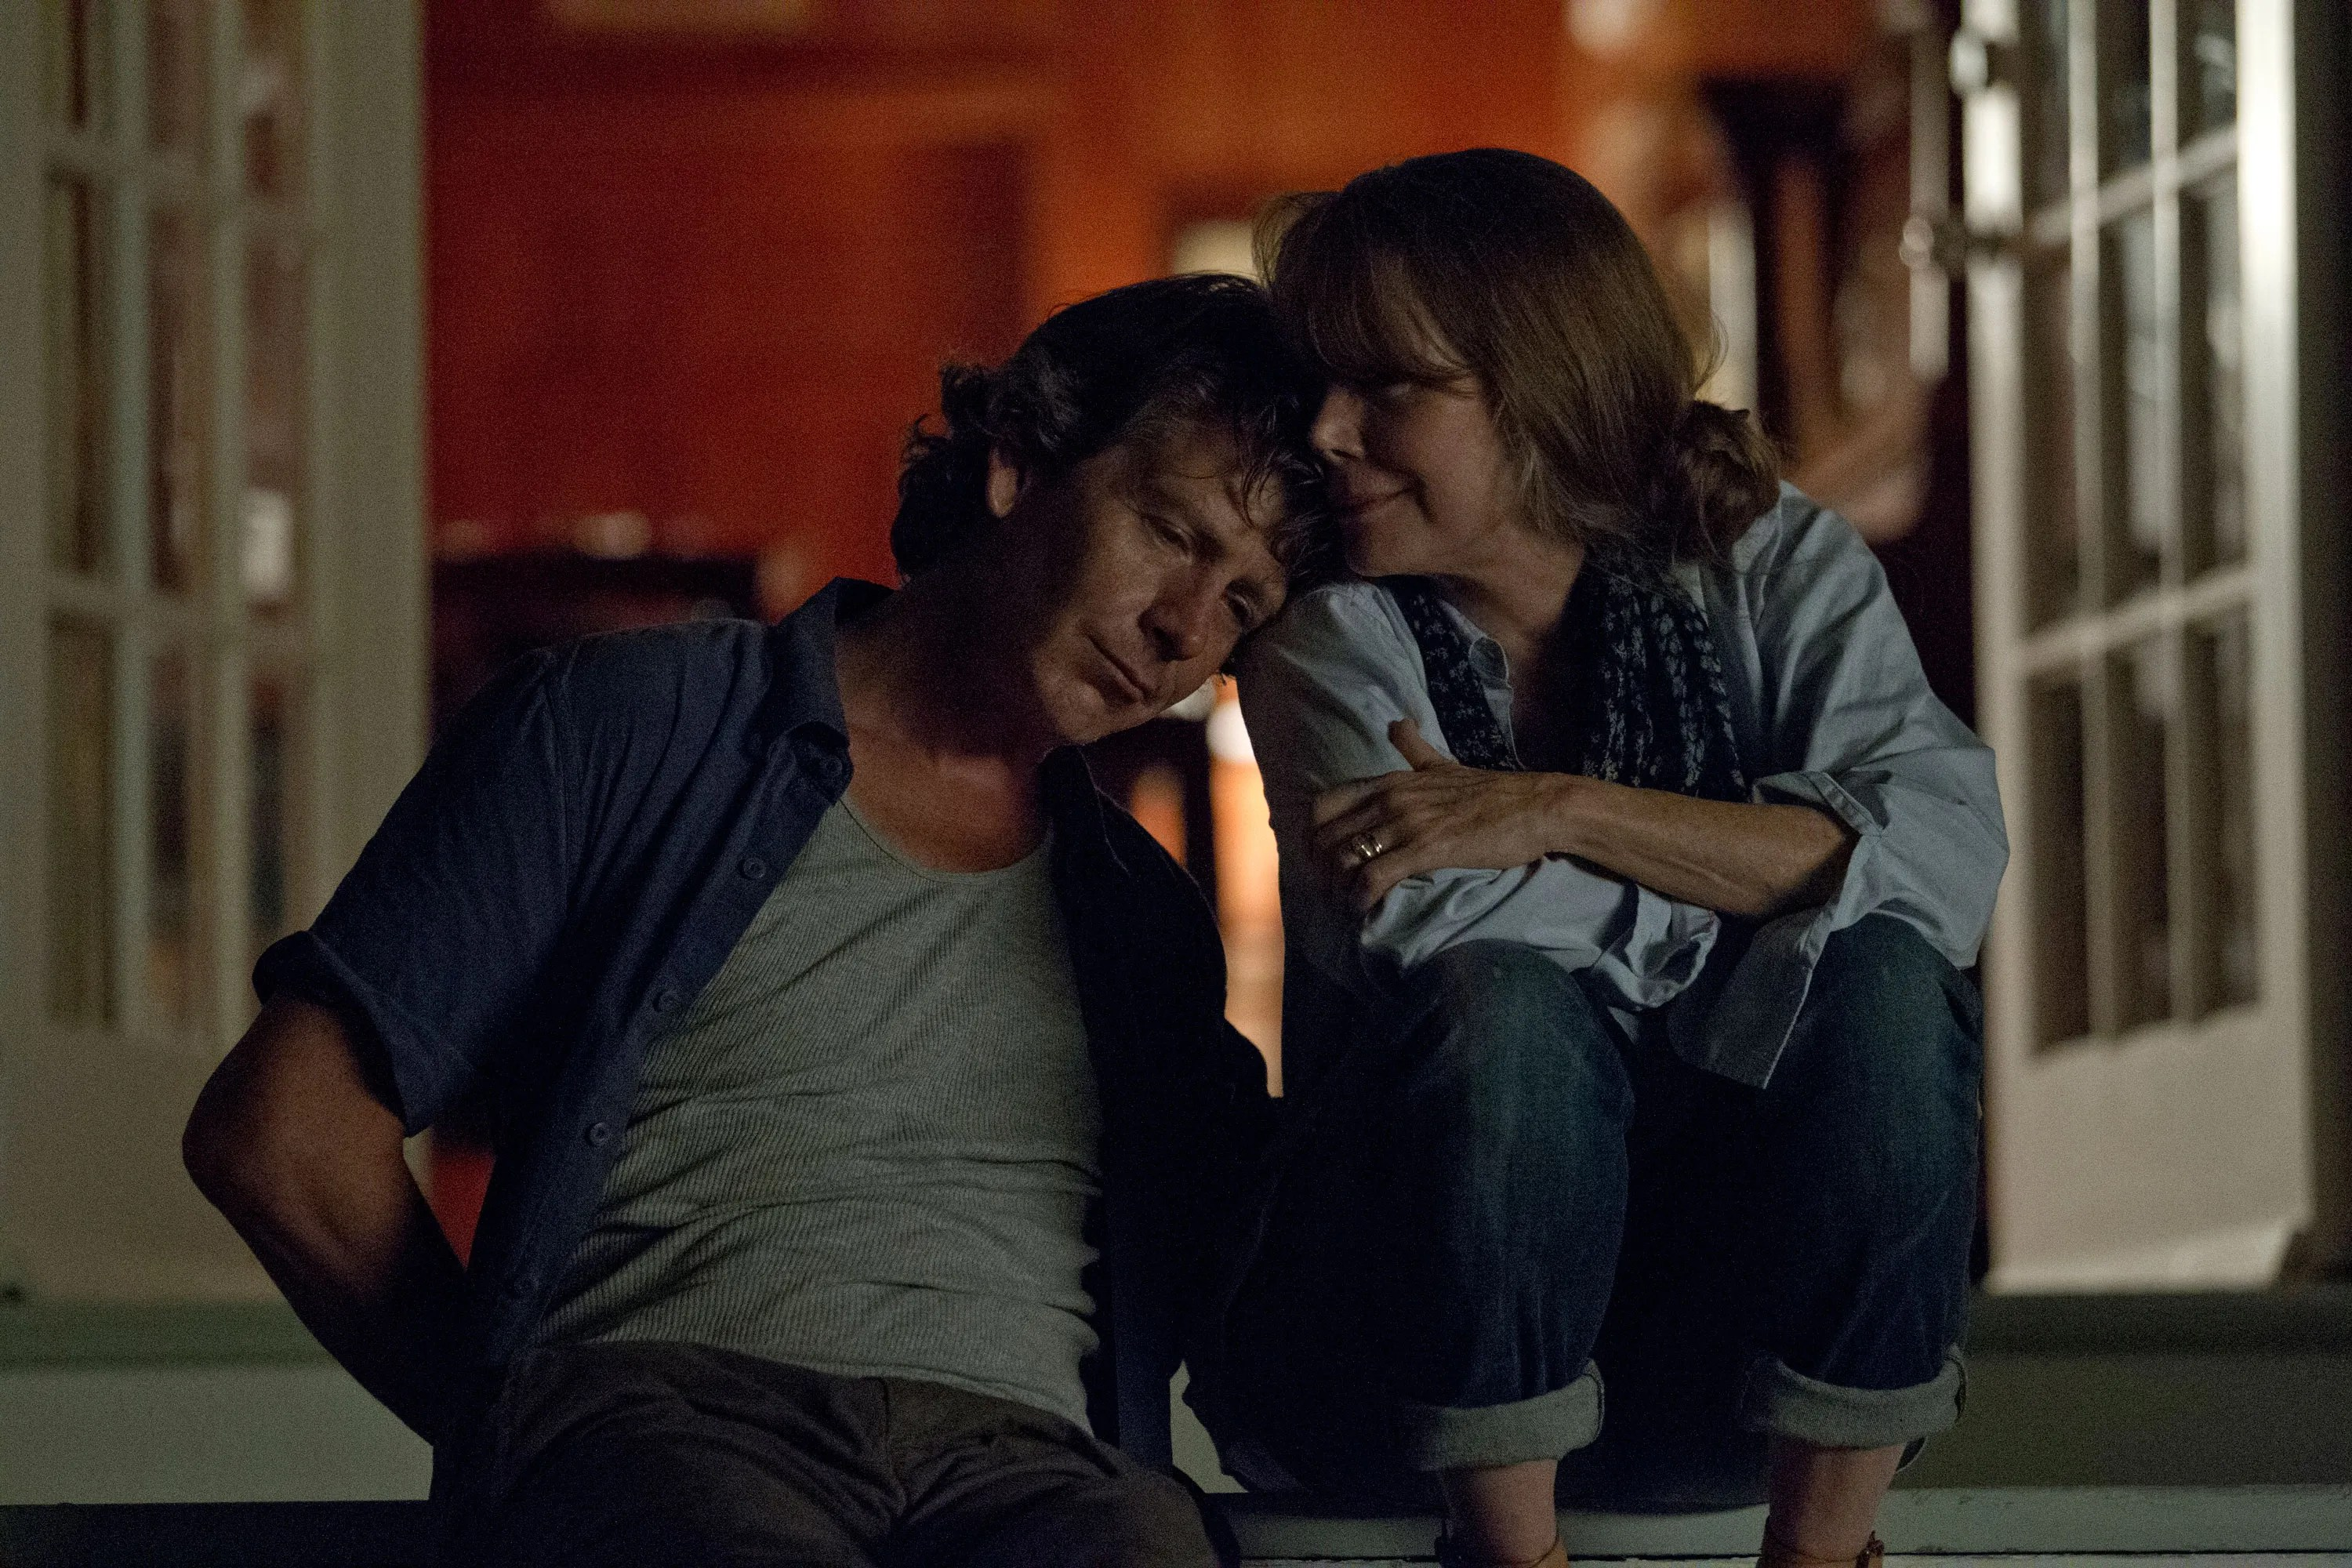 https://i1.wp.com/cdn.collider.com/wp-content/uploads/bloodline-ben-mendelsohn-sissy-spacek.jpg